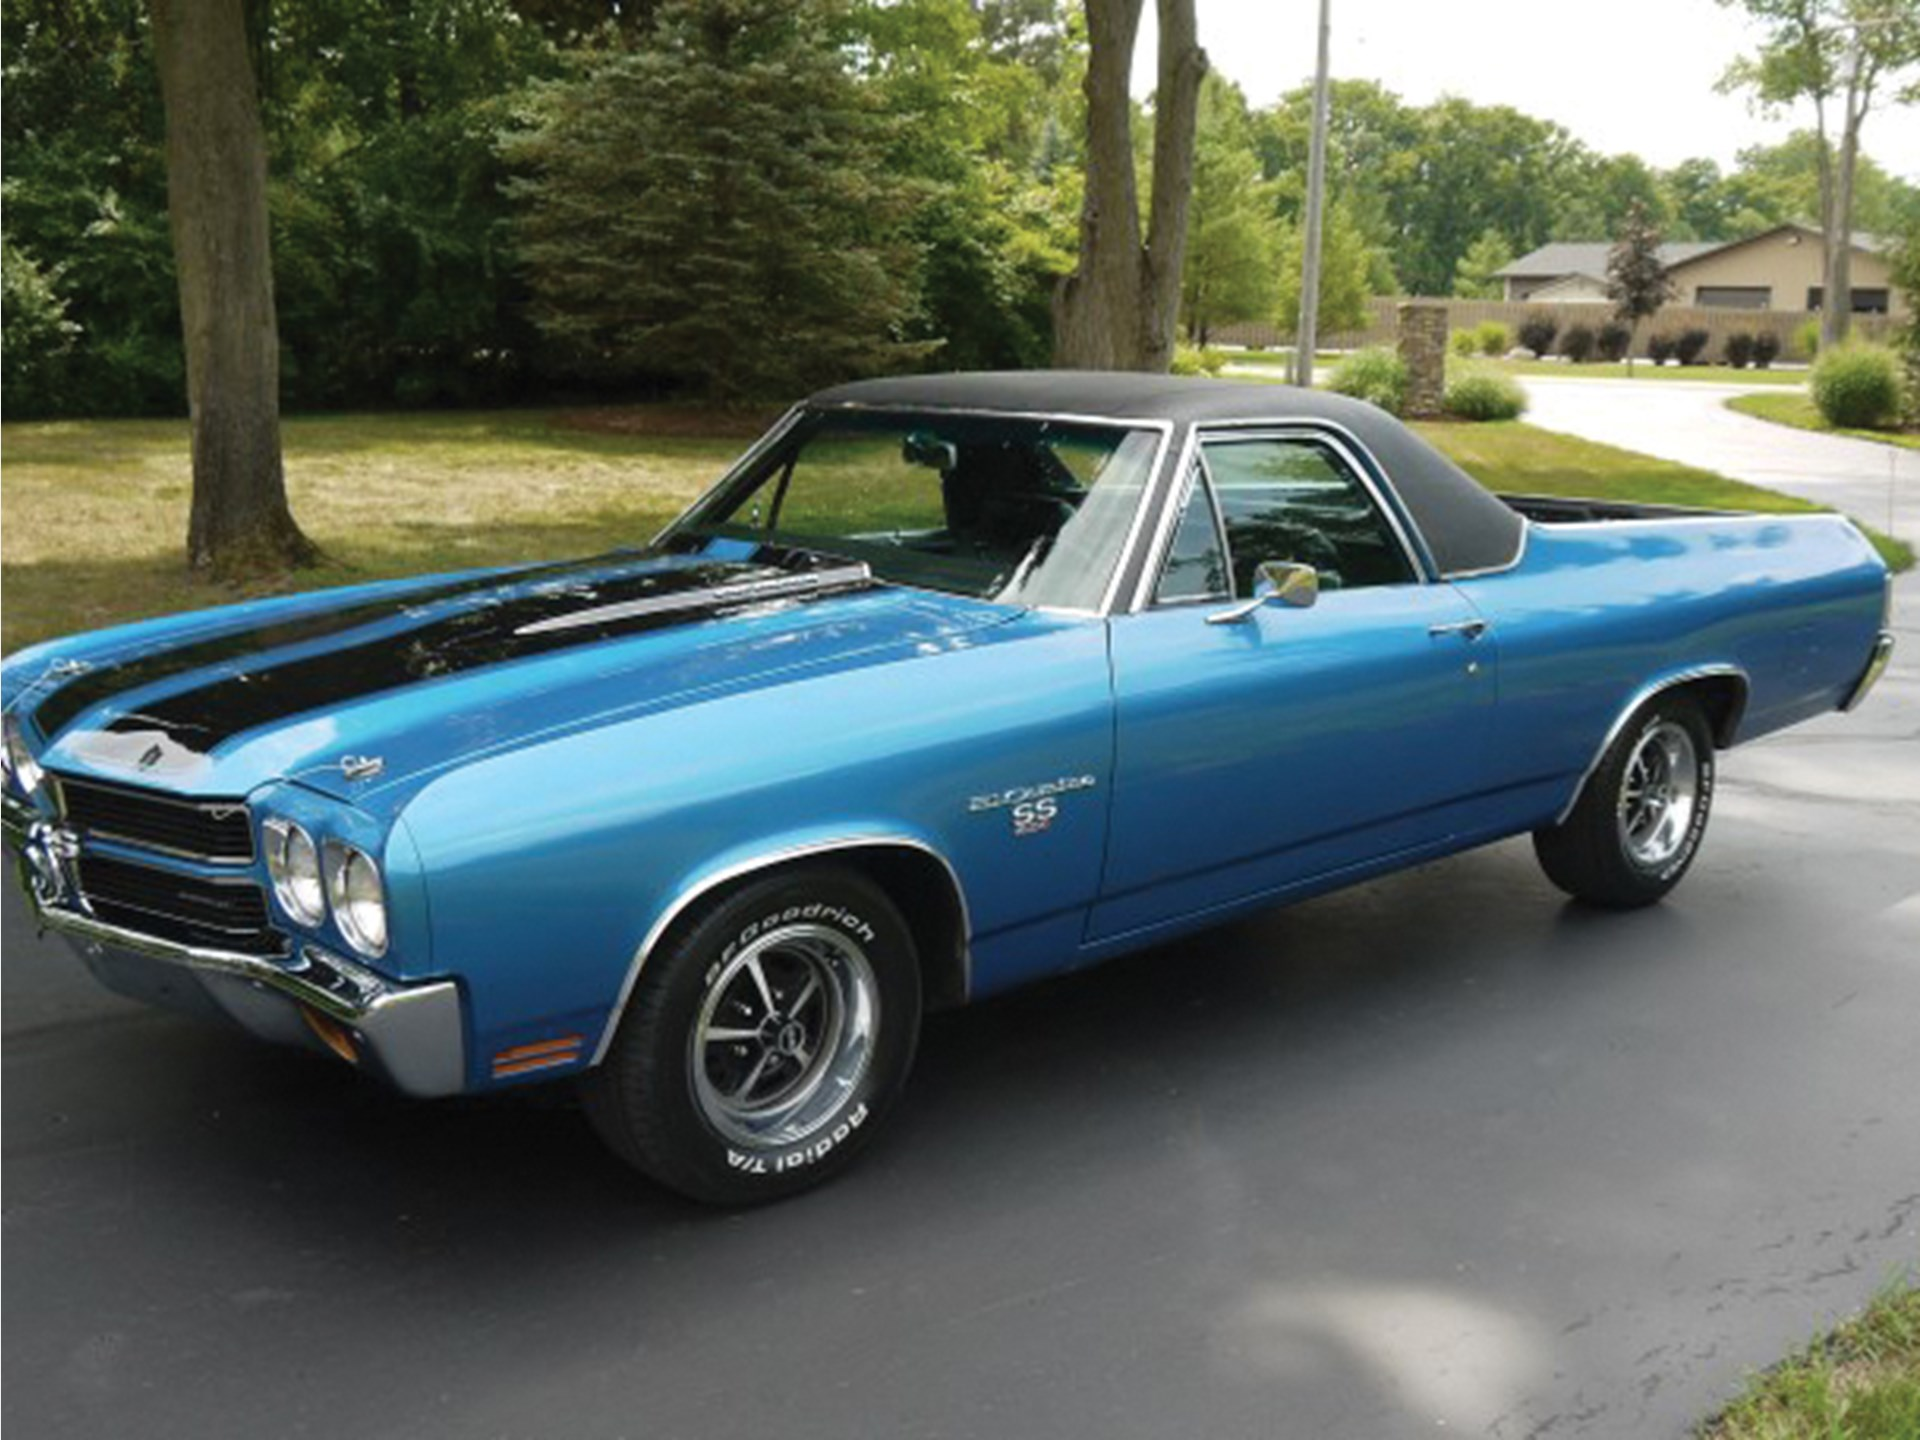 rm sotheby 39 s 1970 chevrolet el camino ss 454 auburn fall 2018. Black Bedroom Furniture Sets. Home Design Ideas